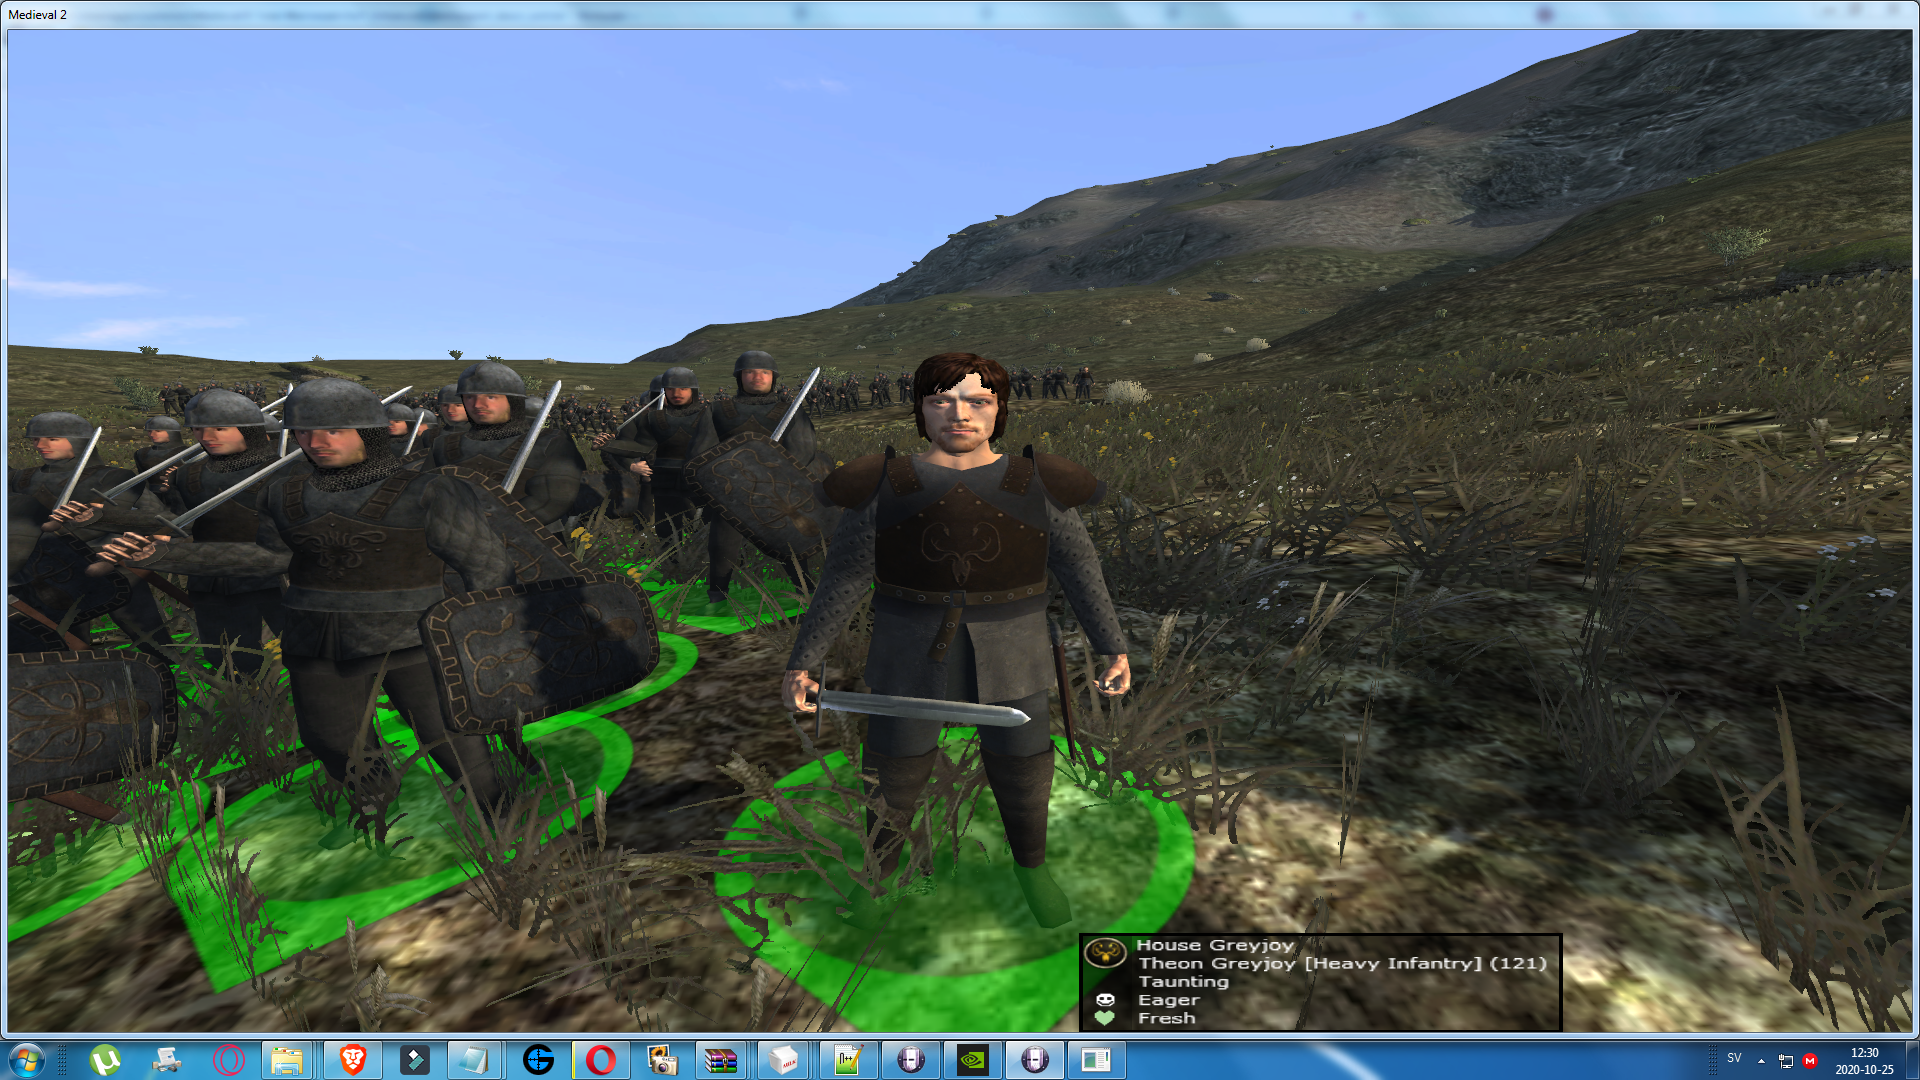 Theon Greyjoy added as a new hero to the mod!